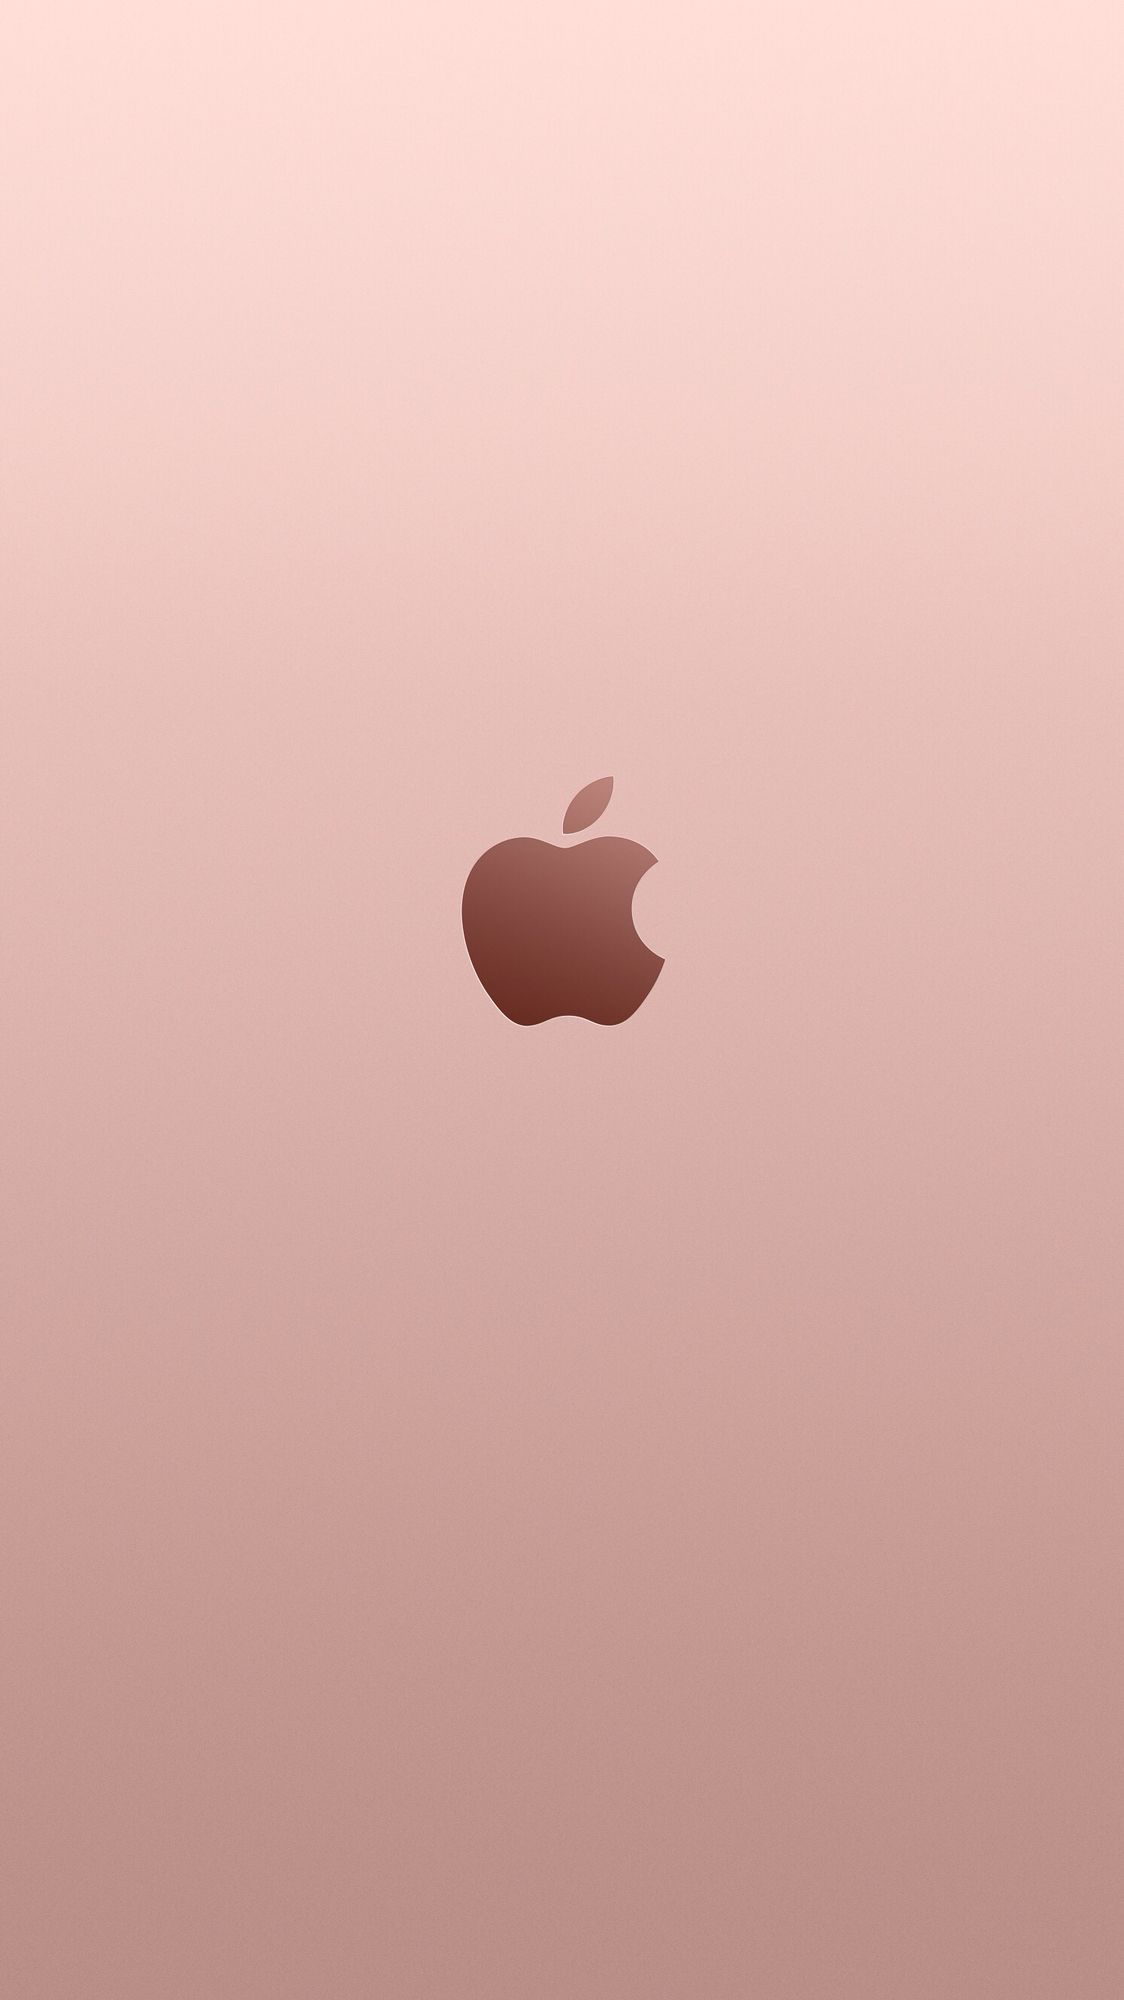 Iphone 6s Plus Rose Gold Wallpapers Fundos De Tela Iphone Imagem De Fundo Para Iphone Papel De Parede Apple